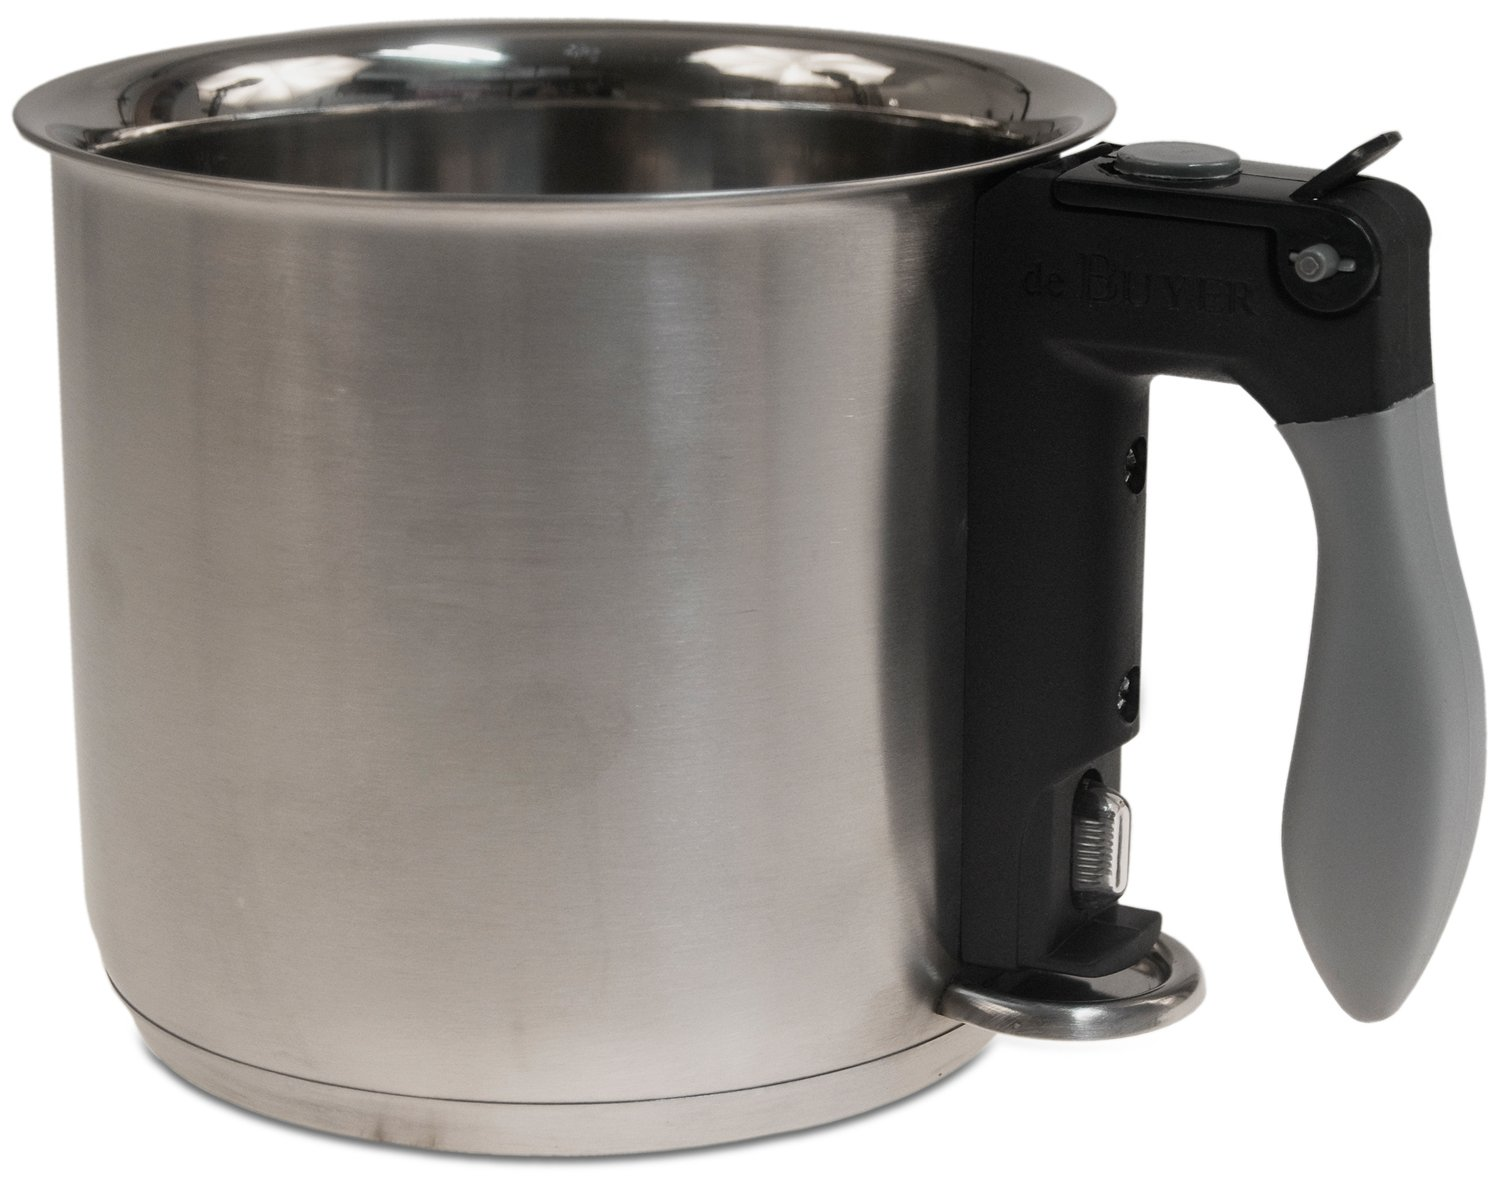 DeBuyer Double Boiler 1.5 Quart